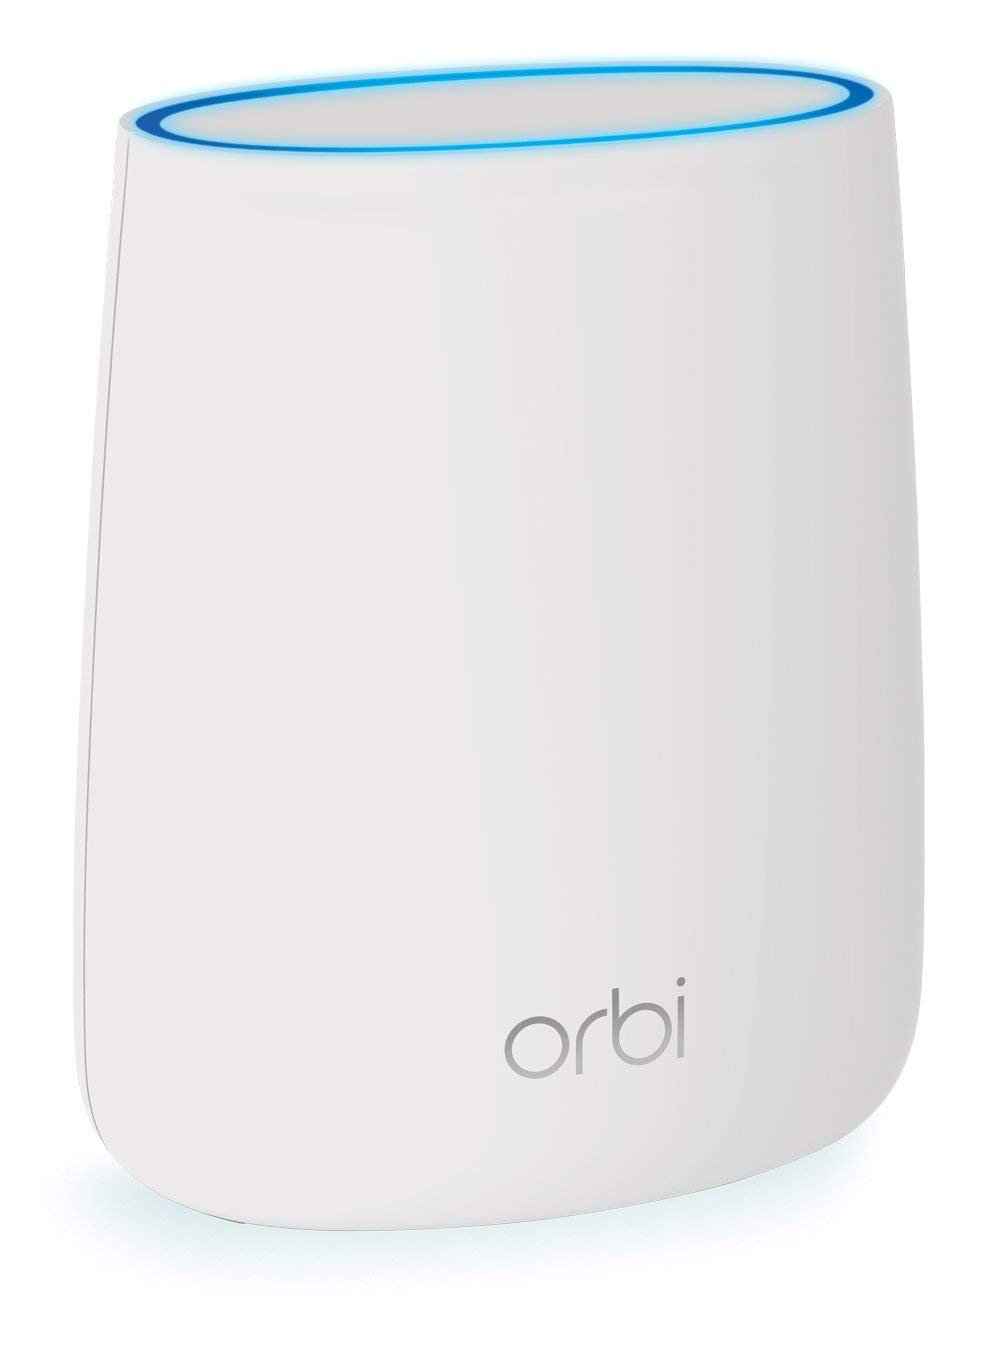 Orbi RBS20 TriBand WiFi Access Point